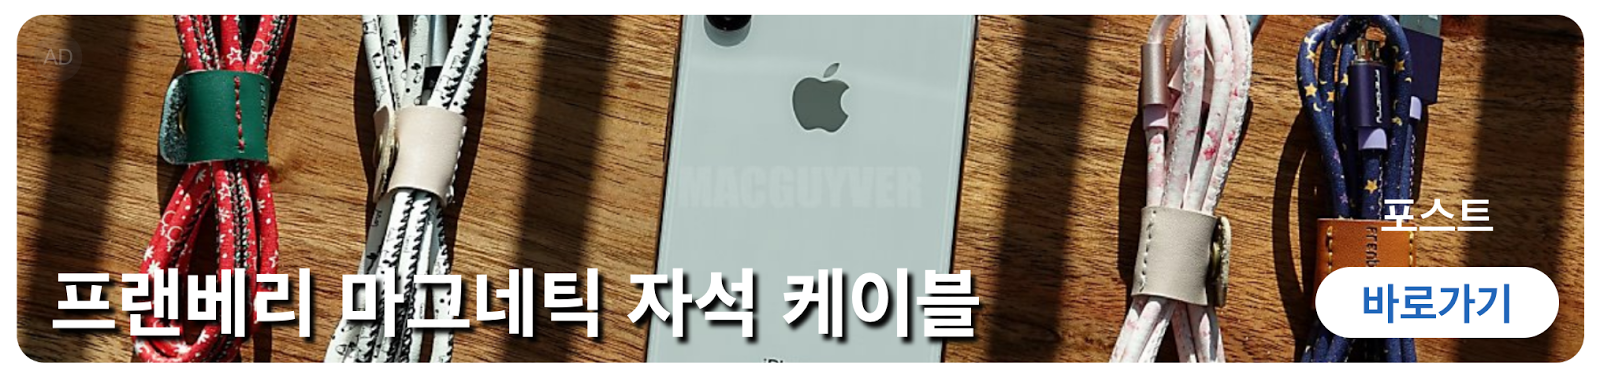 http://naver.me/FMZhN3Gy